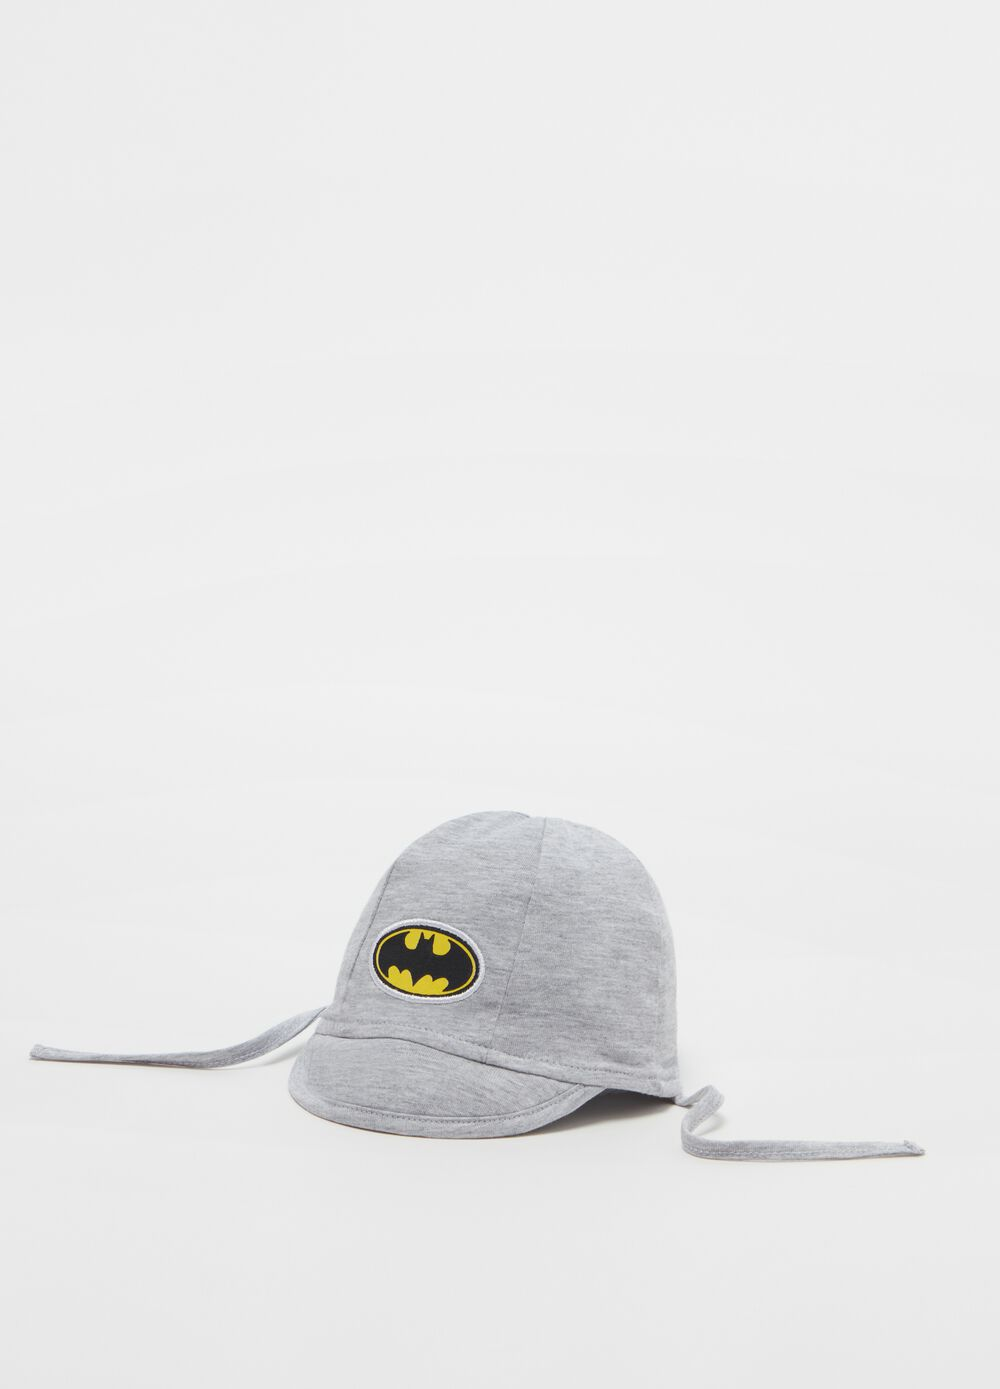 100% organic cotton hat with Batman motif